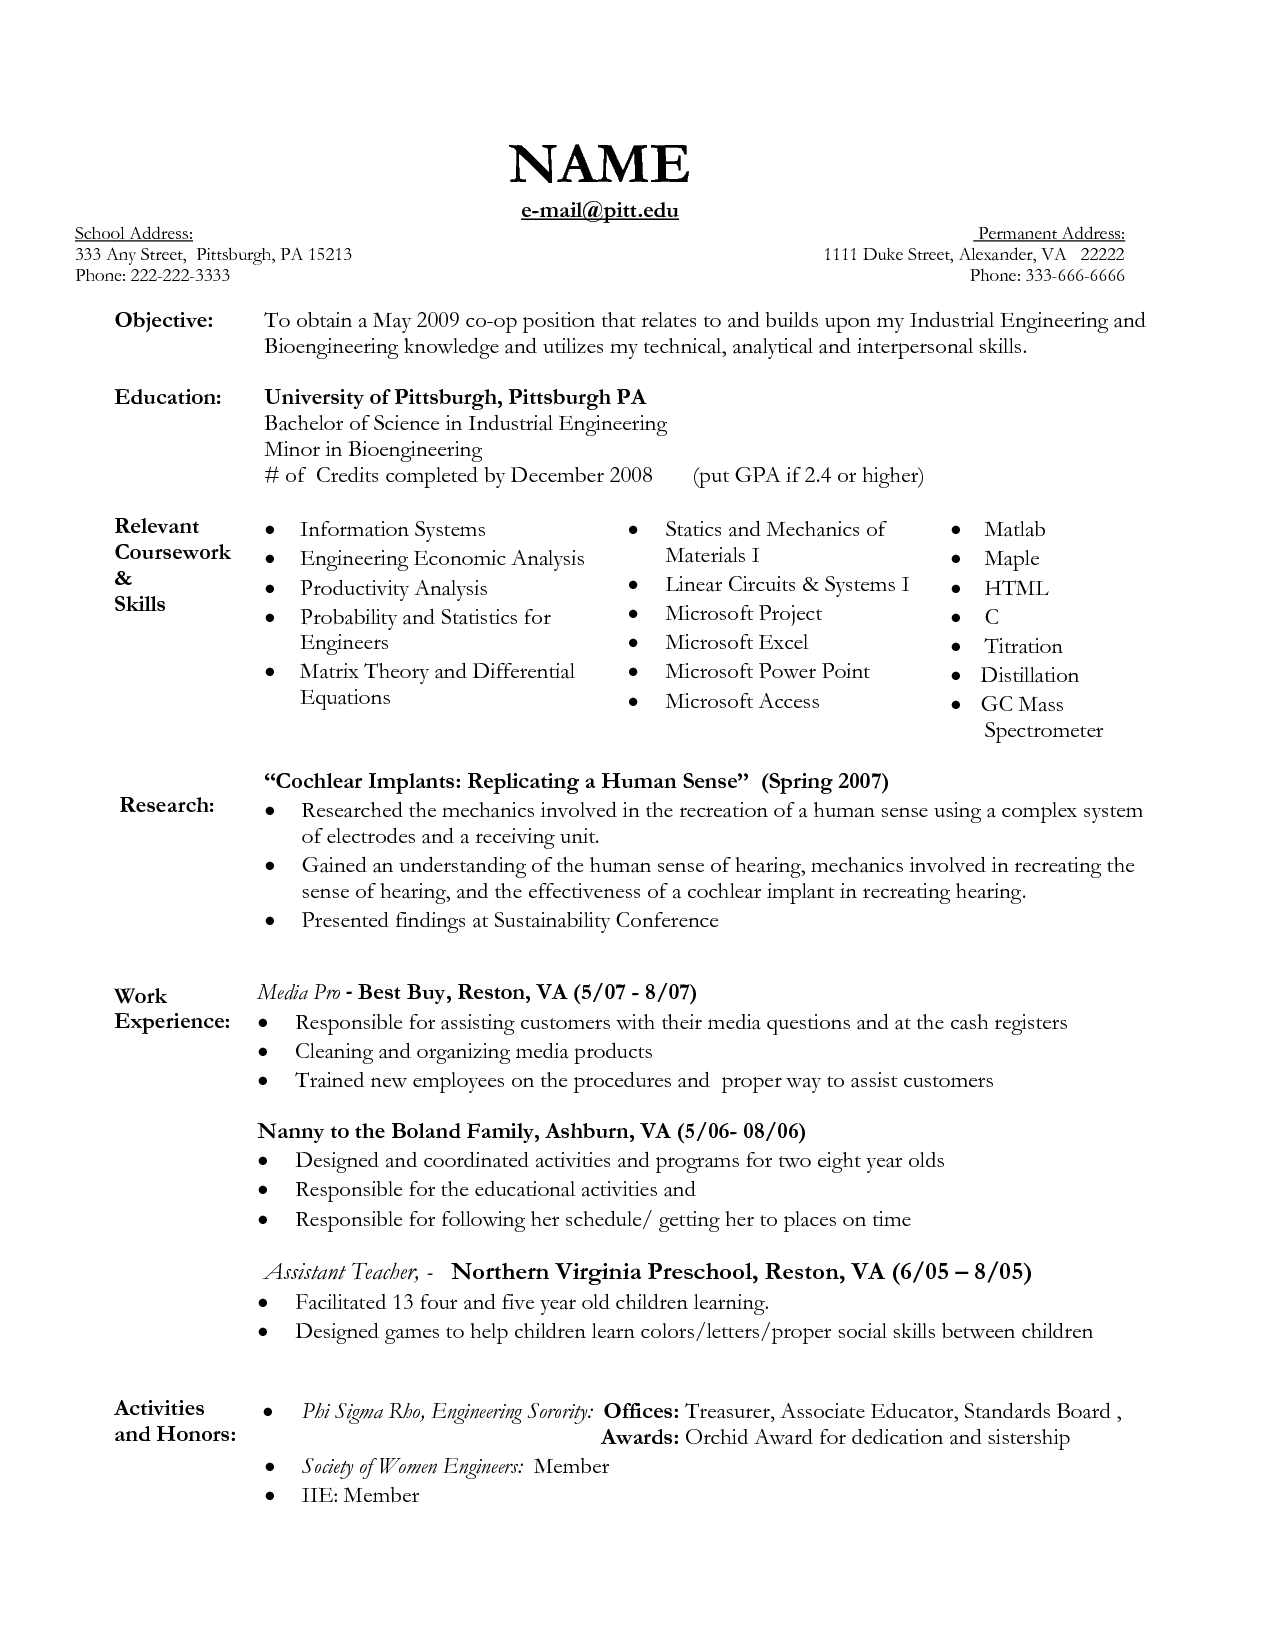 objective for nanny resume and nanny care description for resume